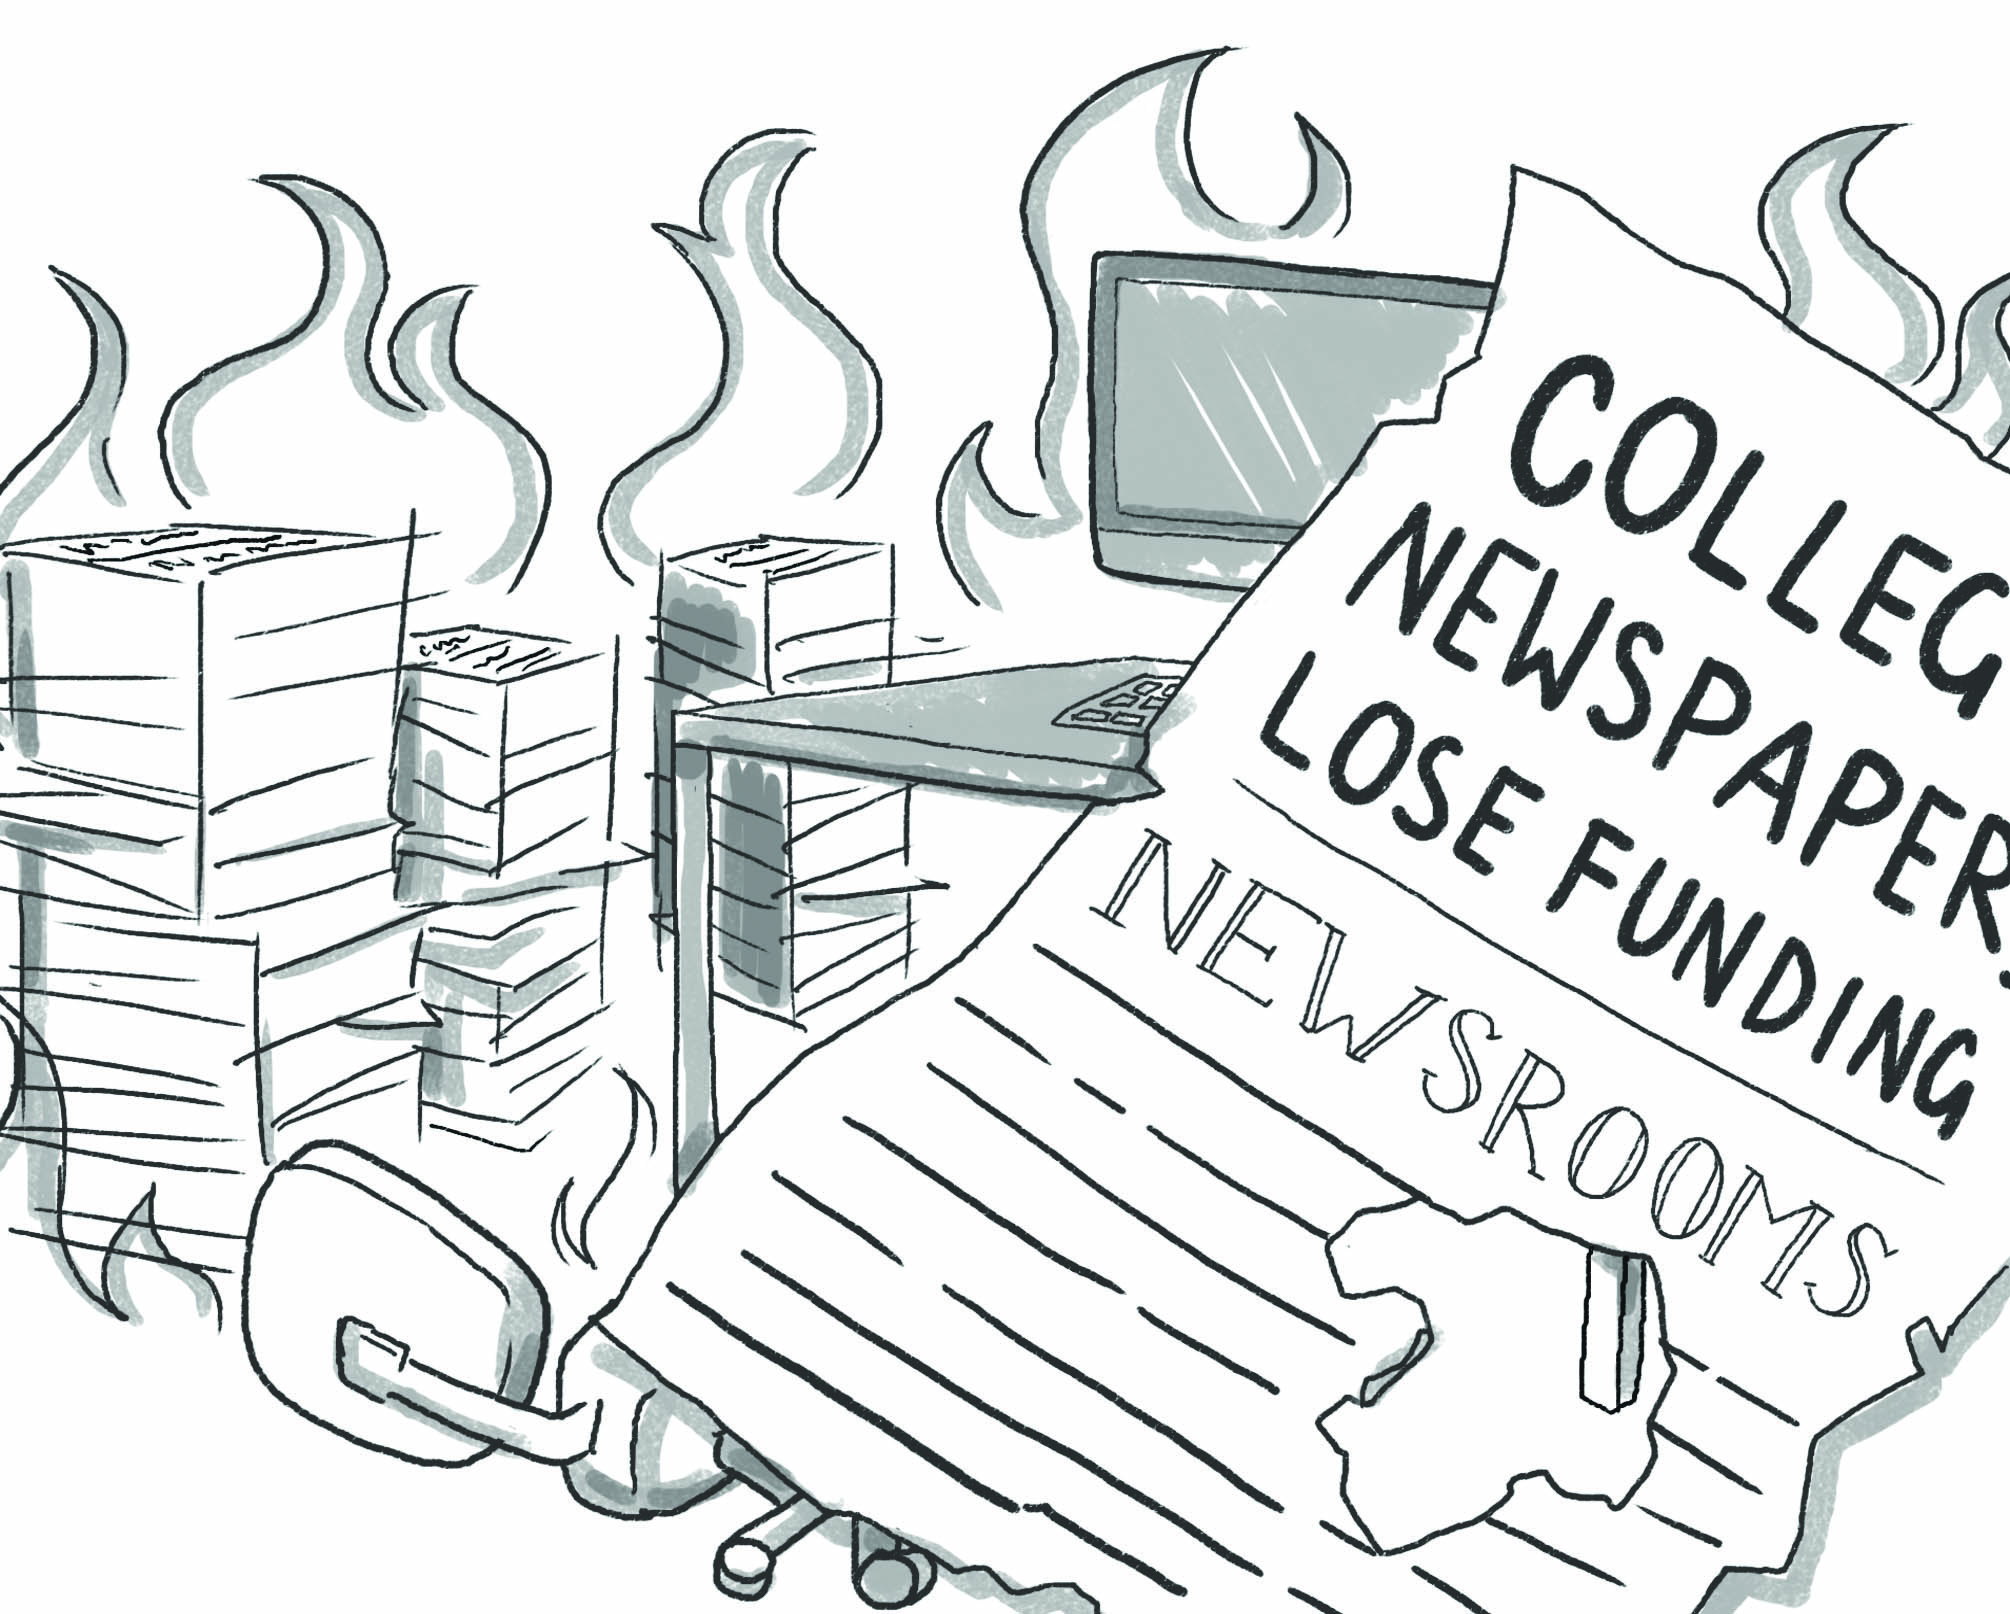 Publications risk closure due to loss of funding, resources